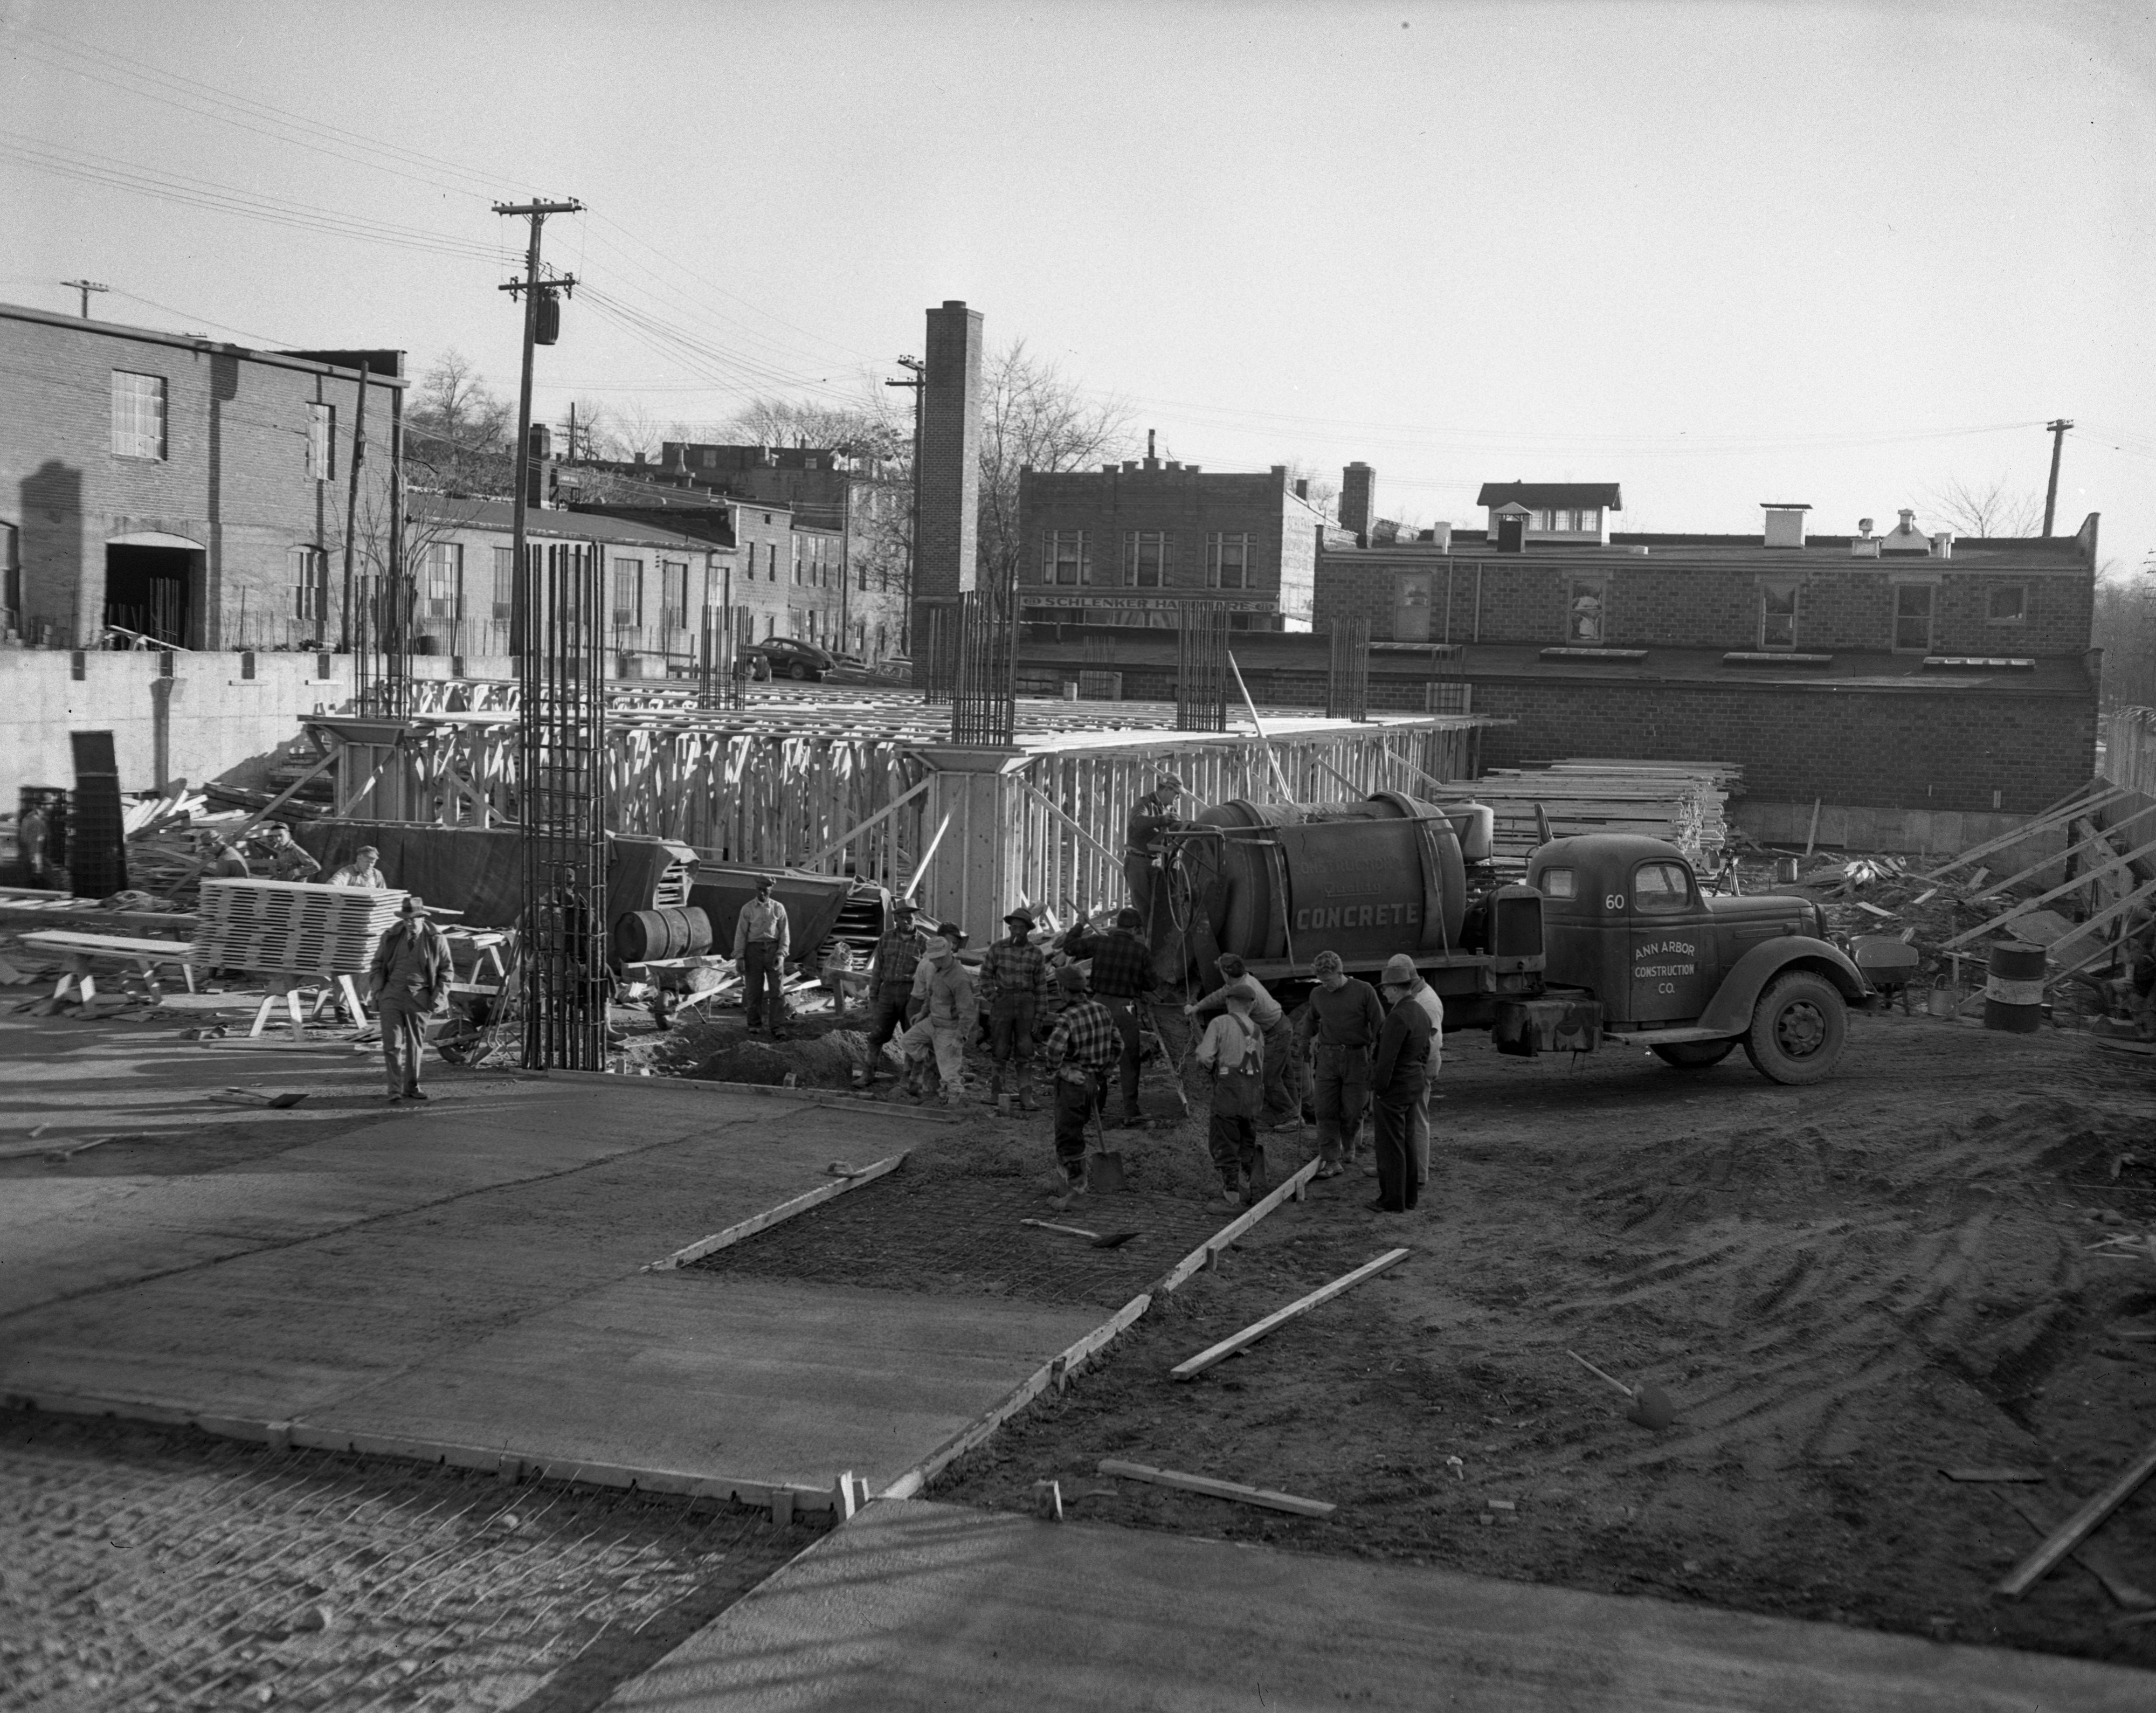 Construction Work For The First & Washington Parking Structure, November 1948 image